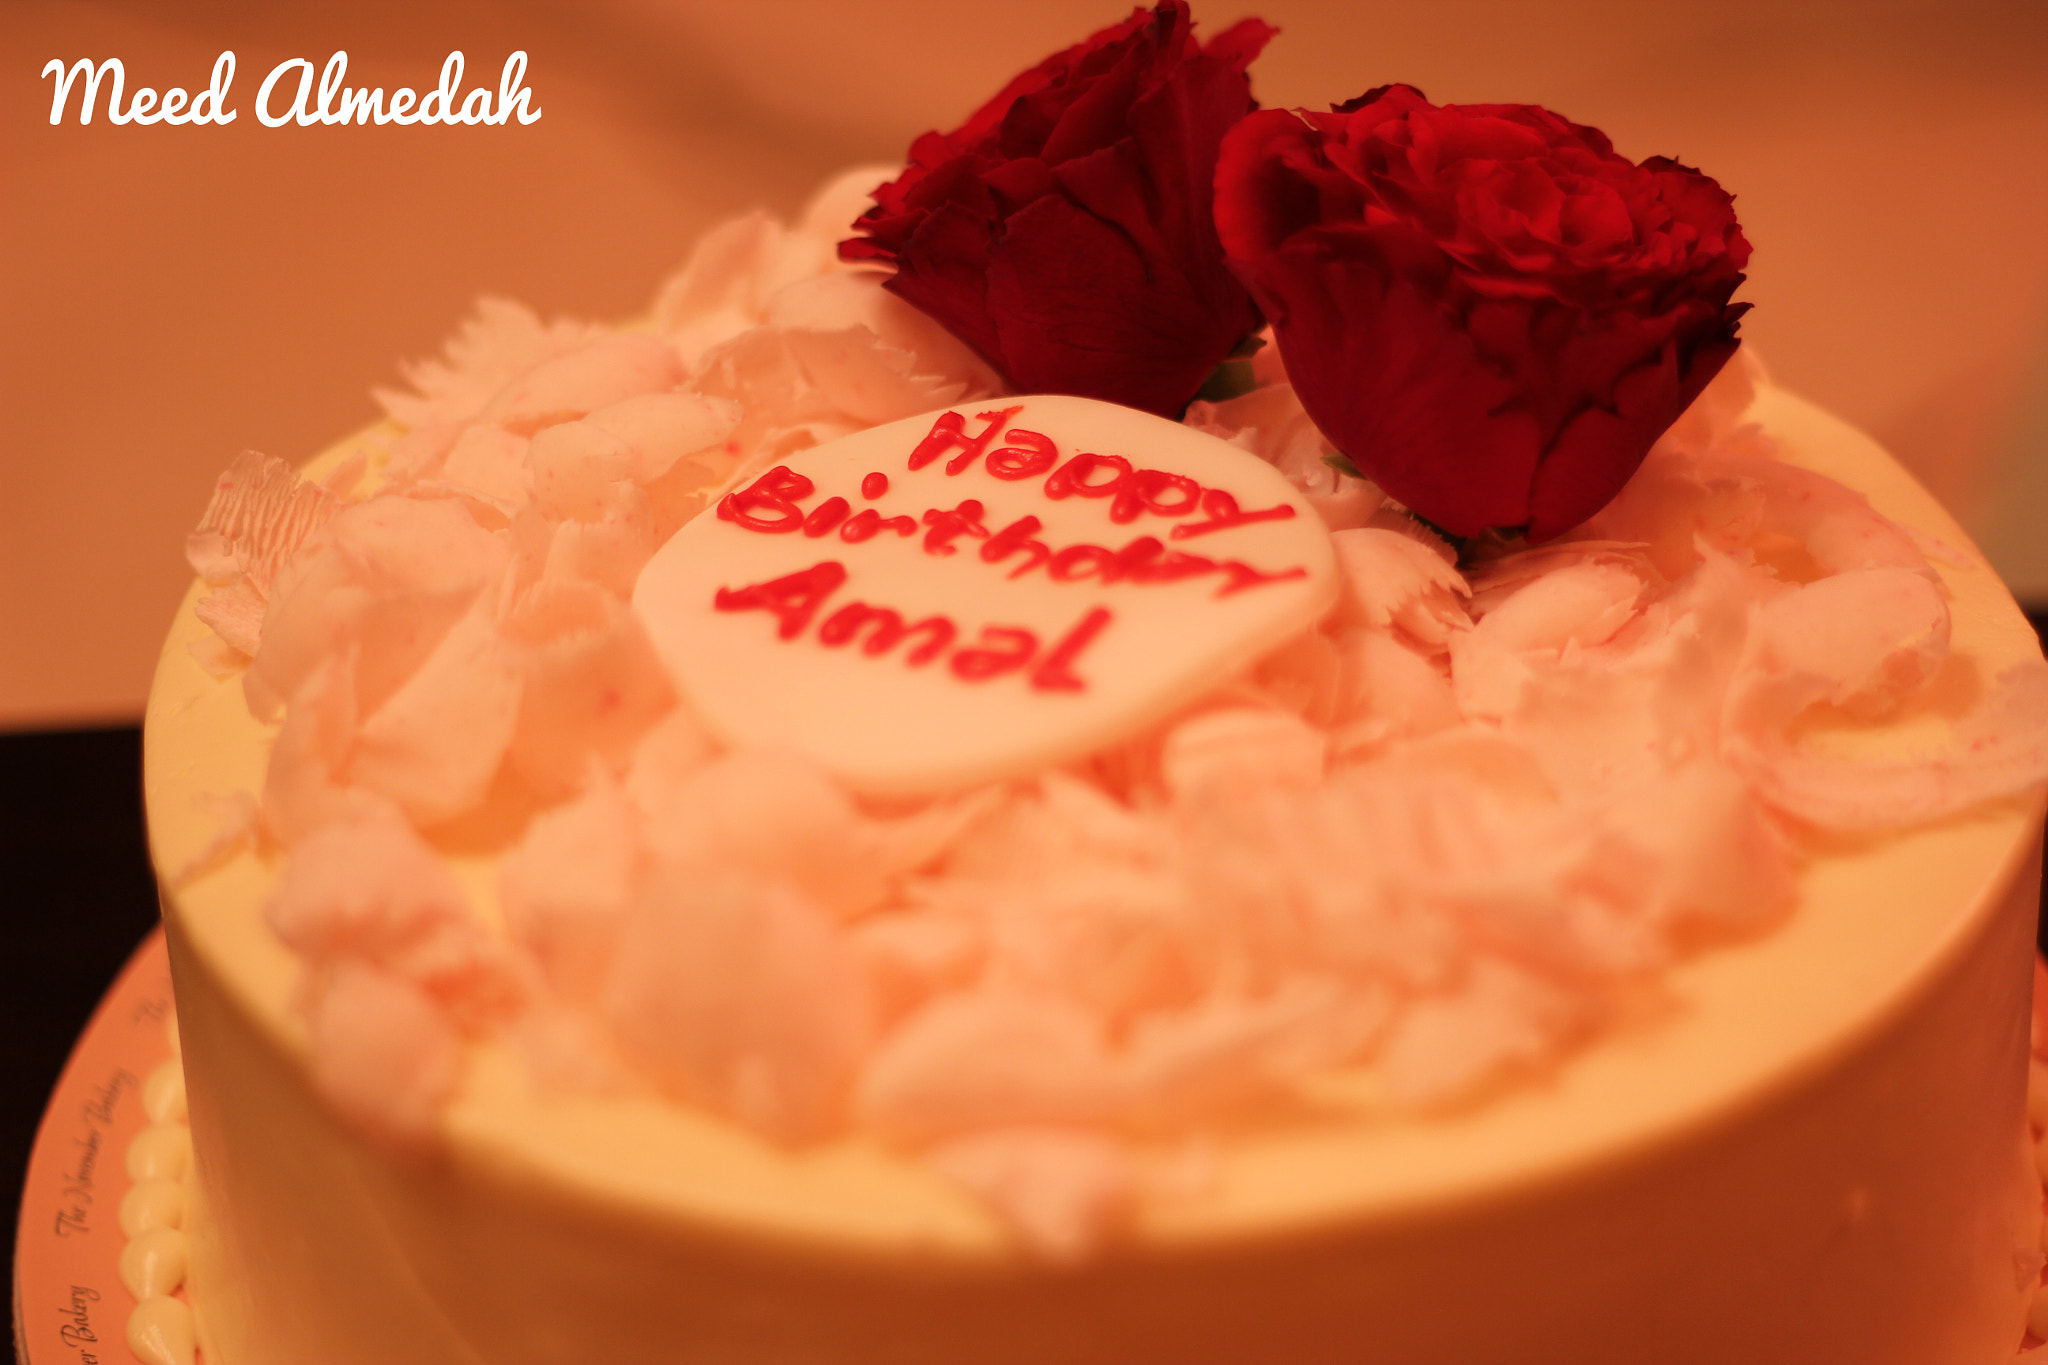 Photograph Birthday Cake My Sister Amal by Meed Almedah on 500px